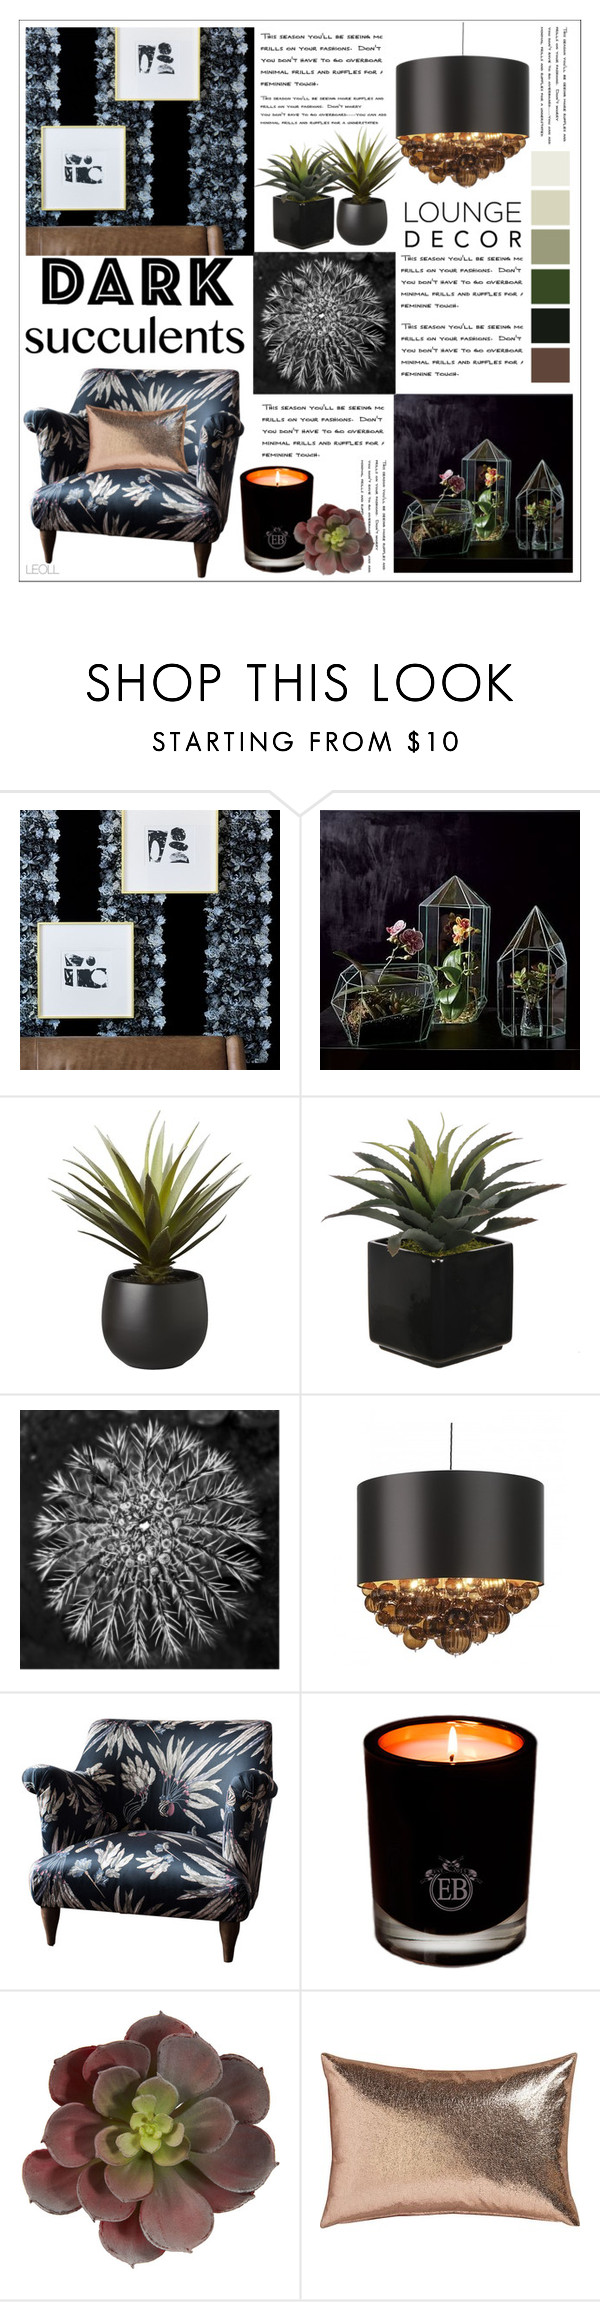 """""""Cacti + Succulents: Dark Succulents Lounge Decor"""" by leoll ❤ liked on Polyvore featuring interior, interiors, interior design, home, home decor, interior decorating, CB2, West Elm, Barclay Butera and Heathfield & Co."""